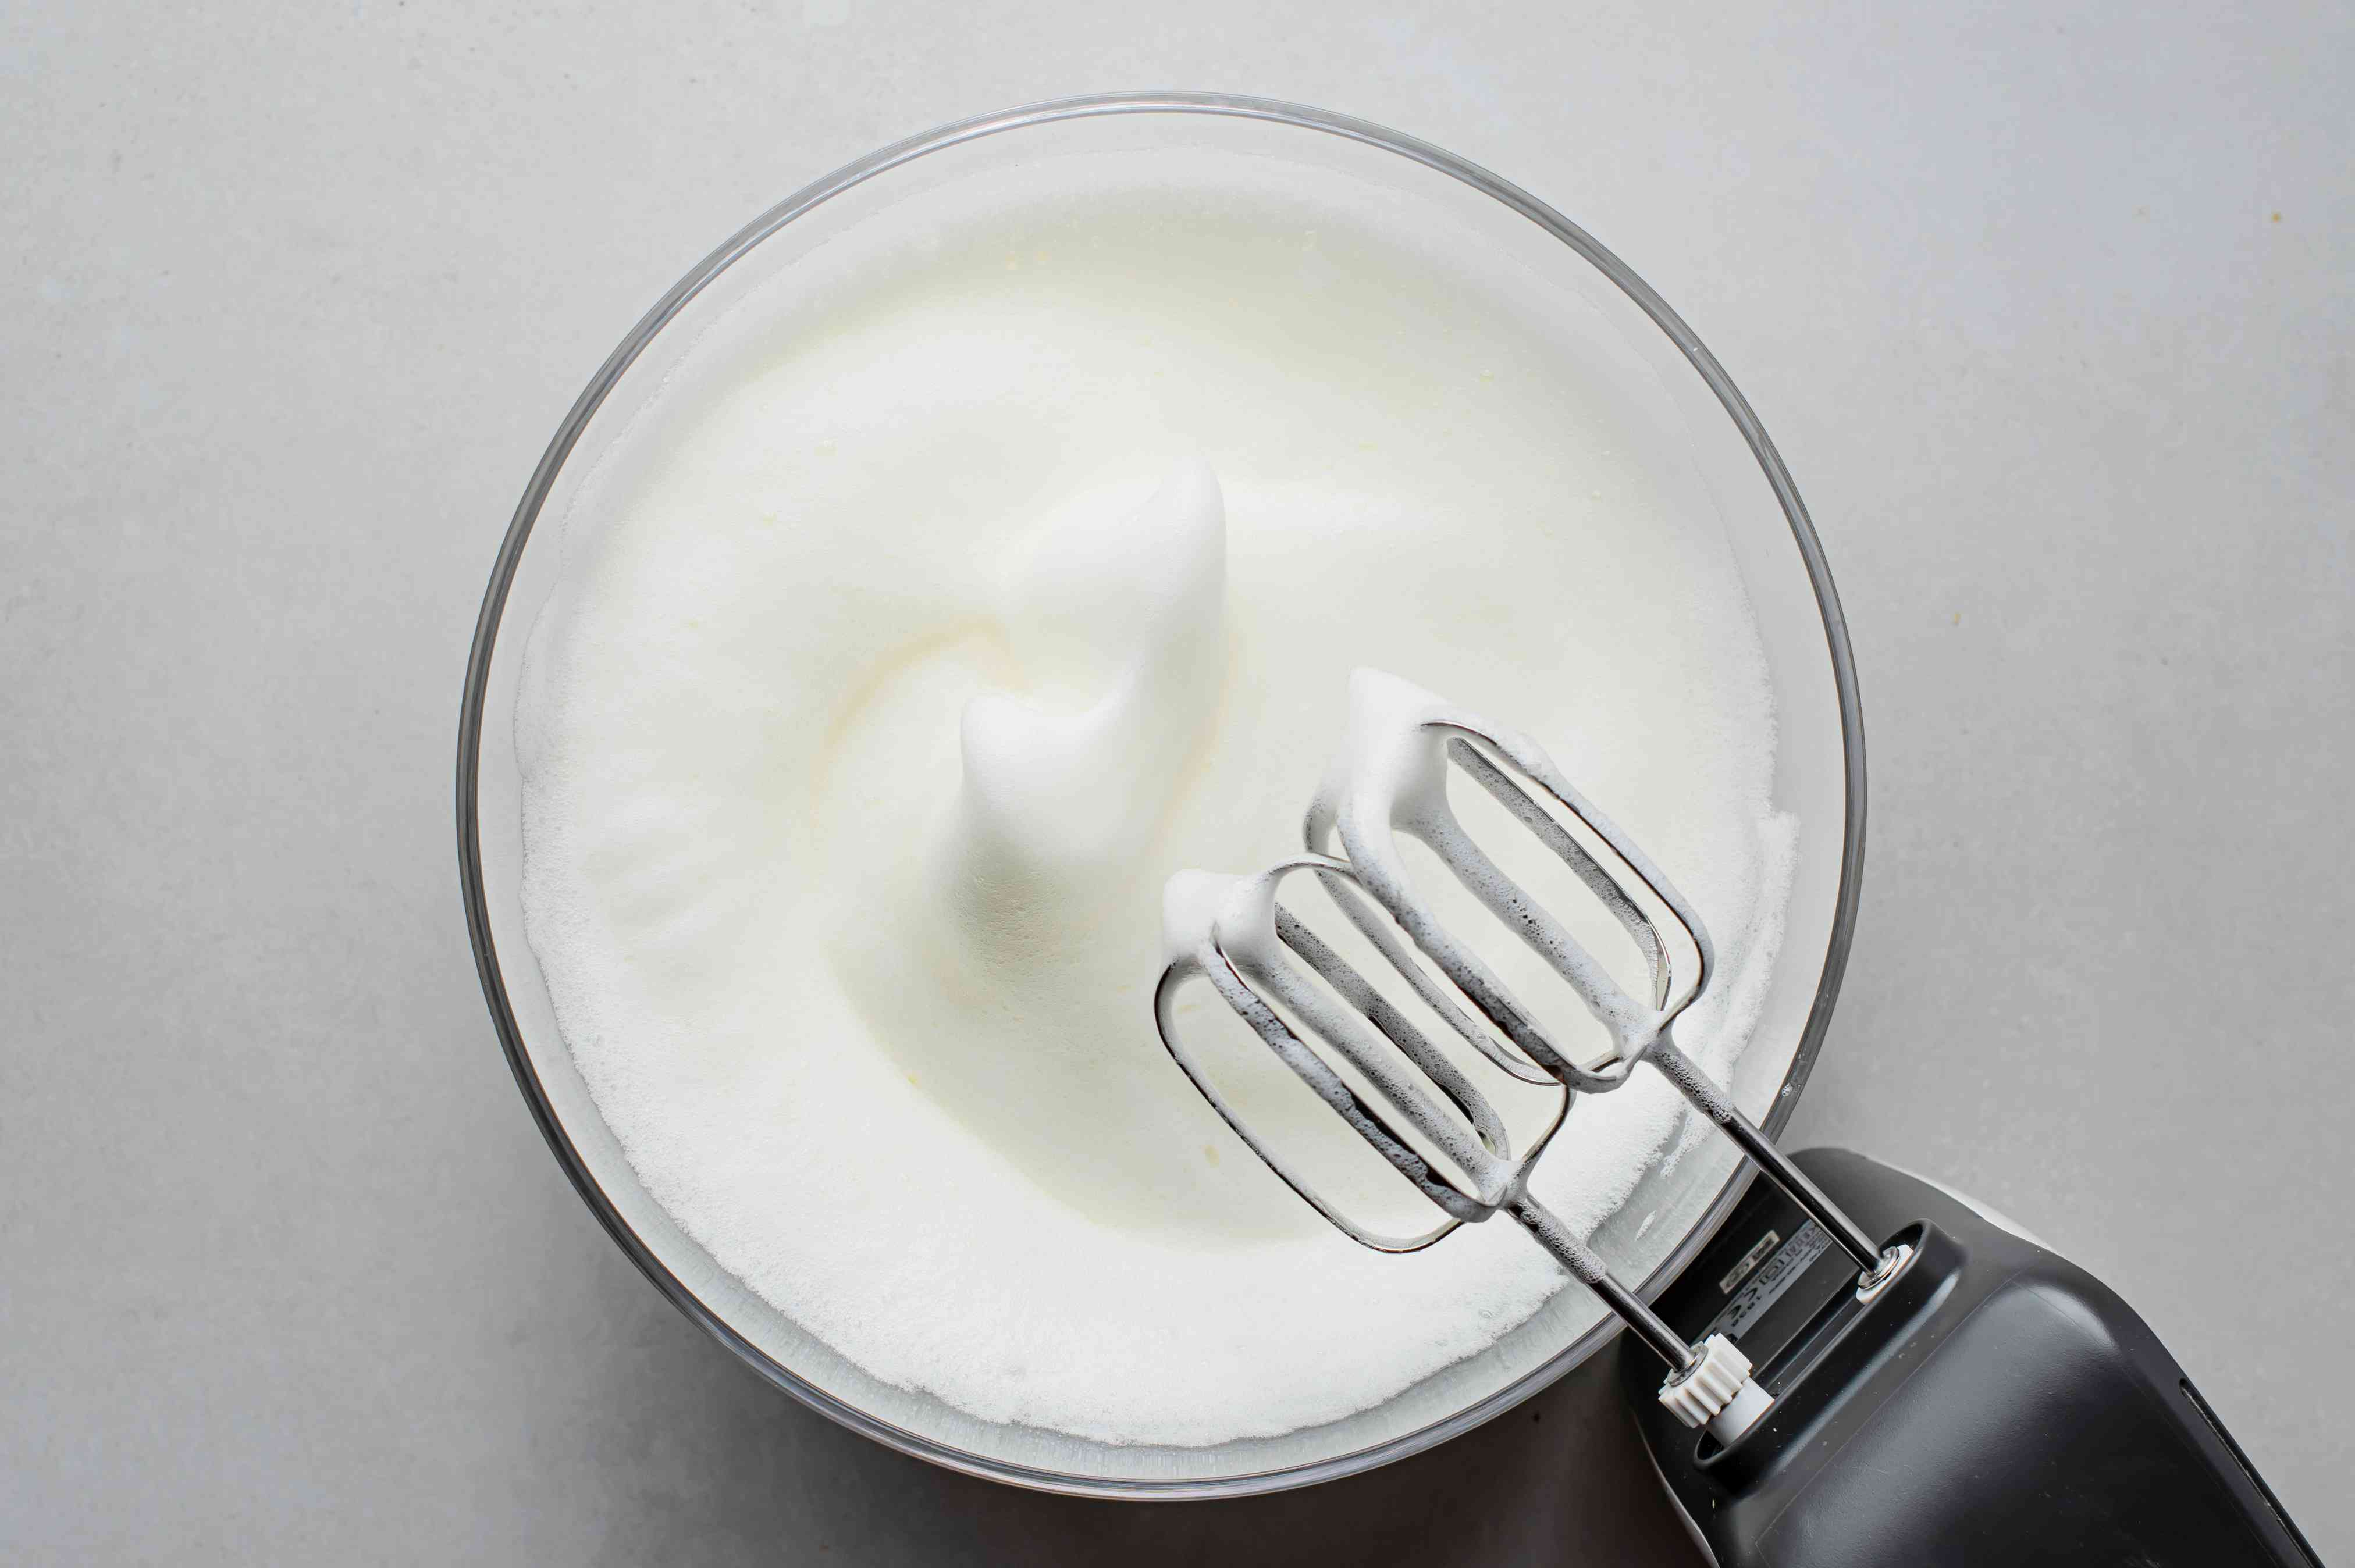 egg whites beat with a hand mixer in a bowl